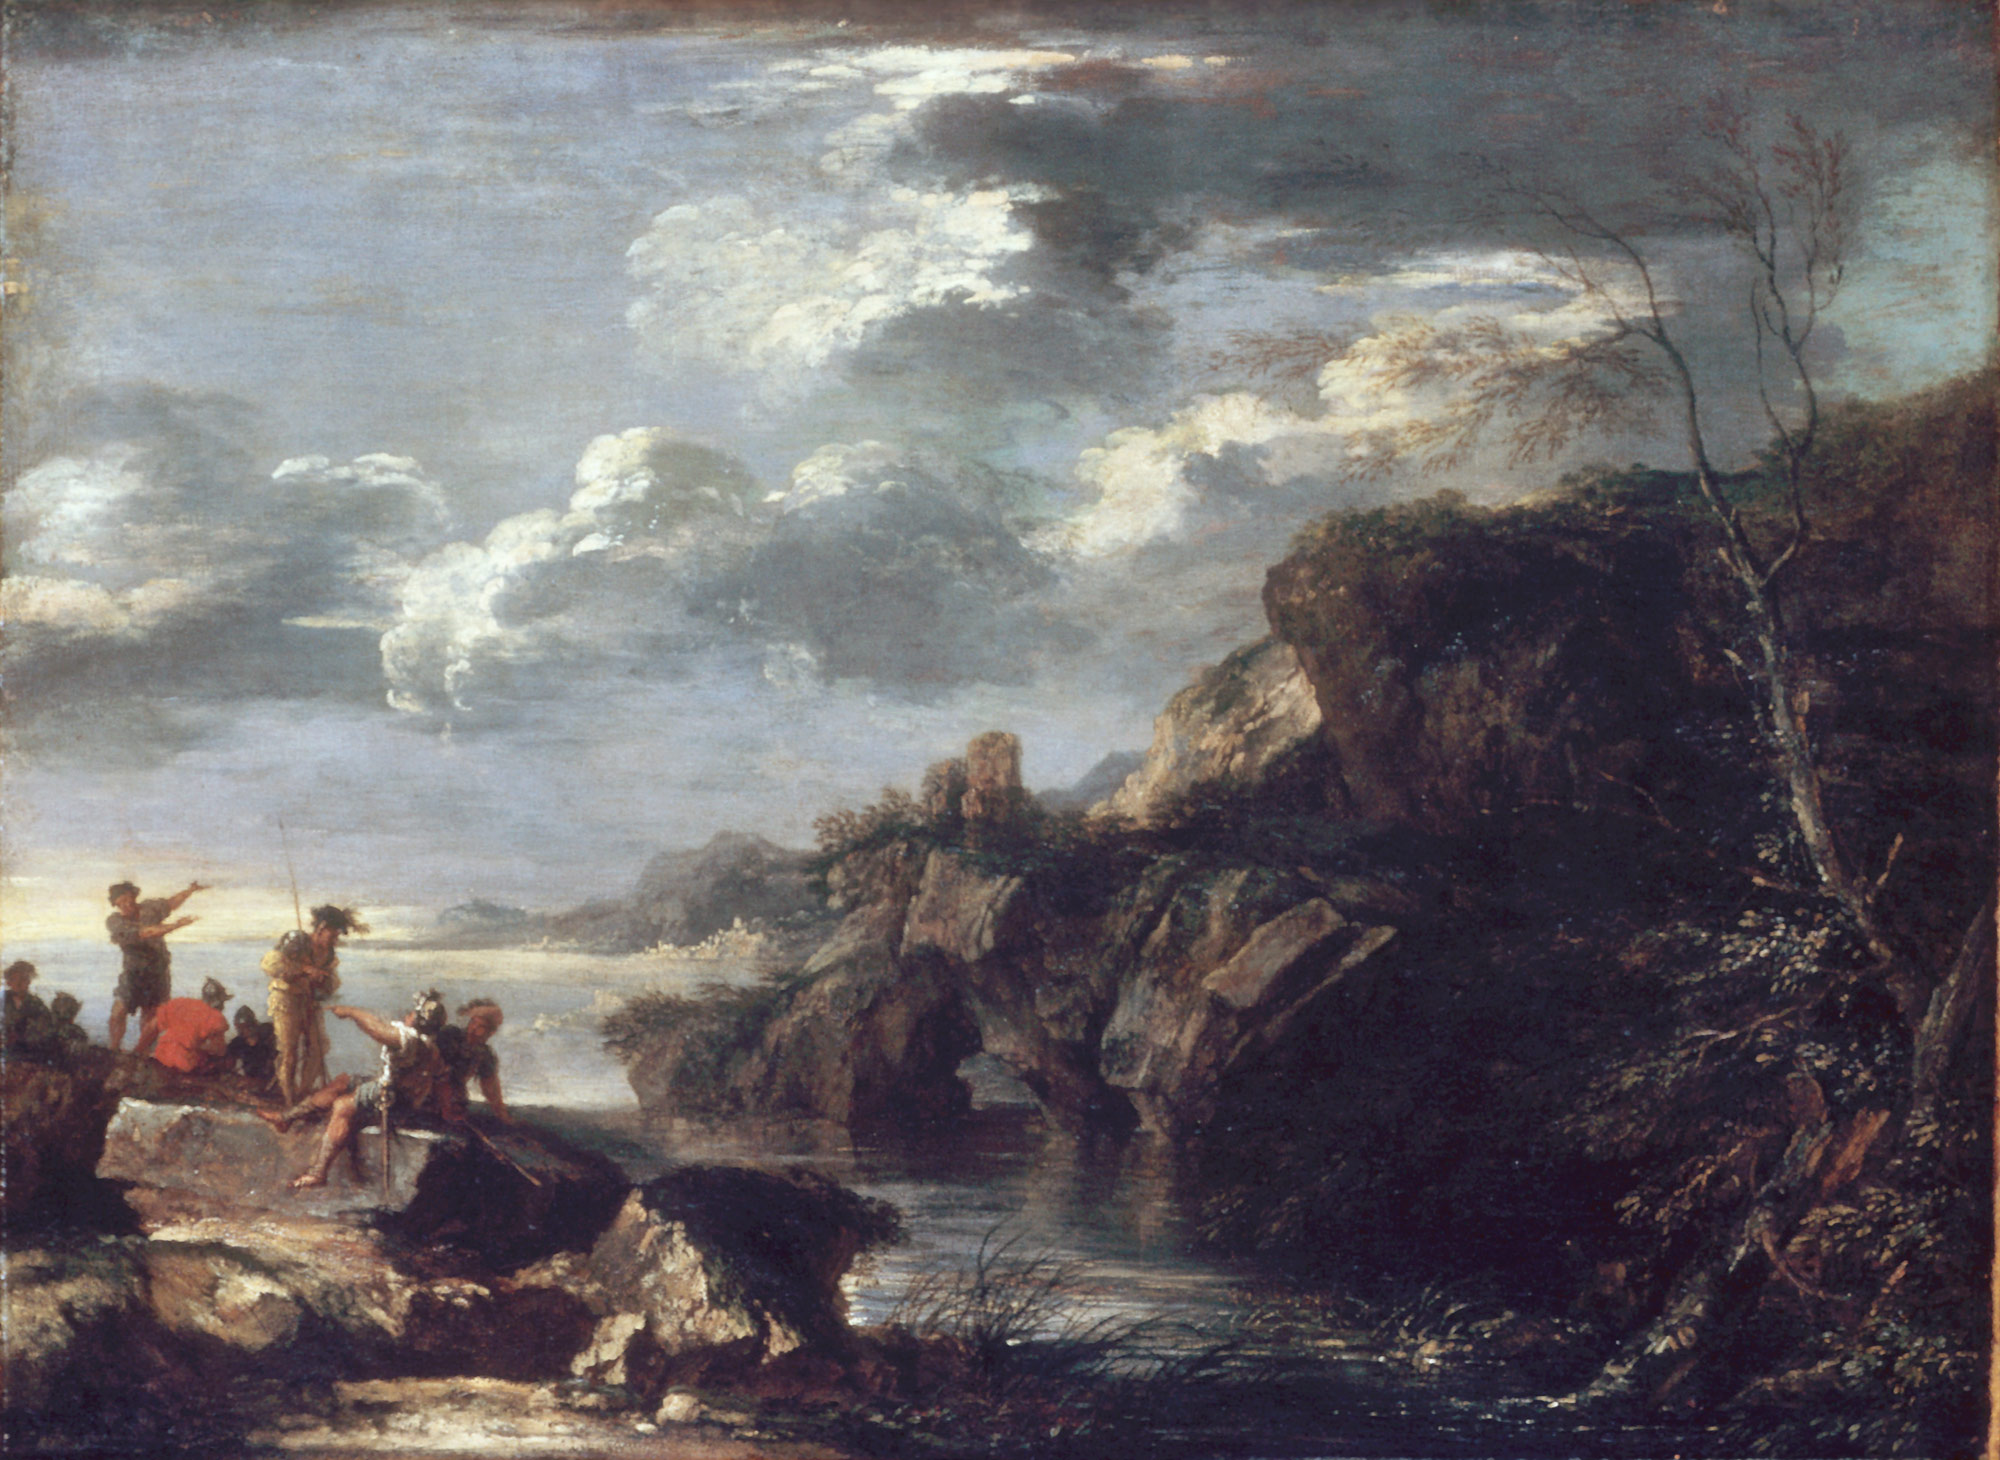 Bandits on a Rocky Coast